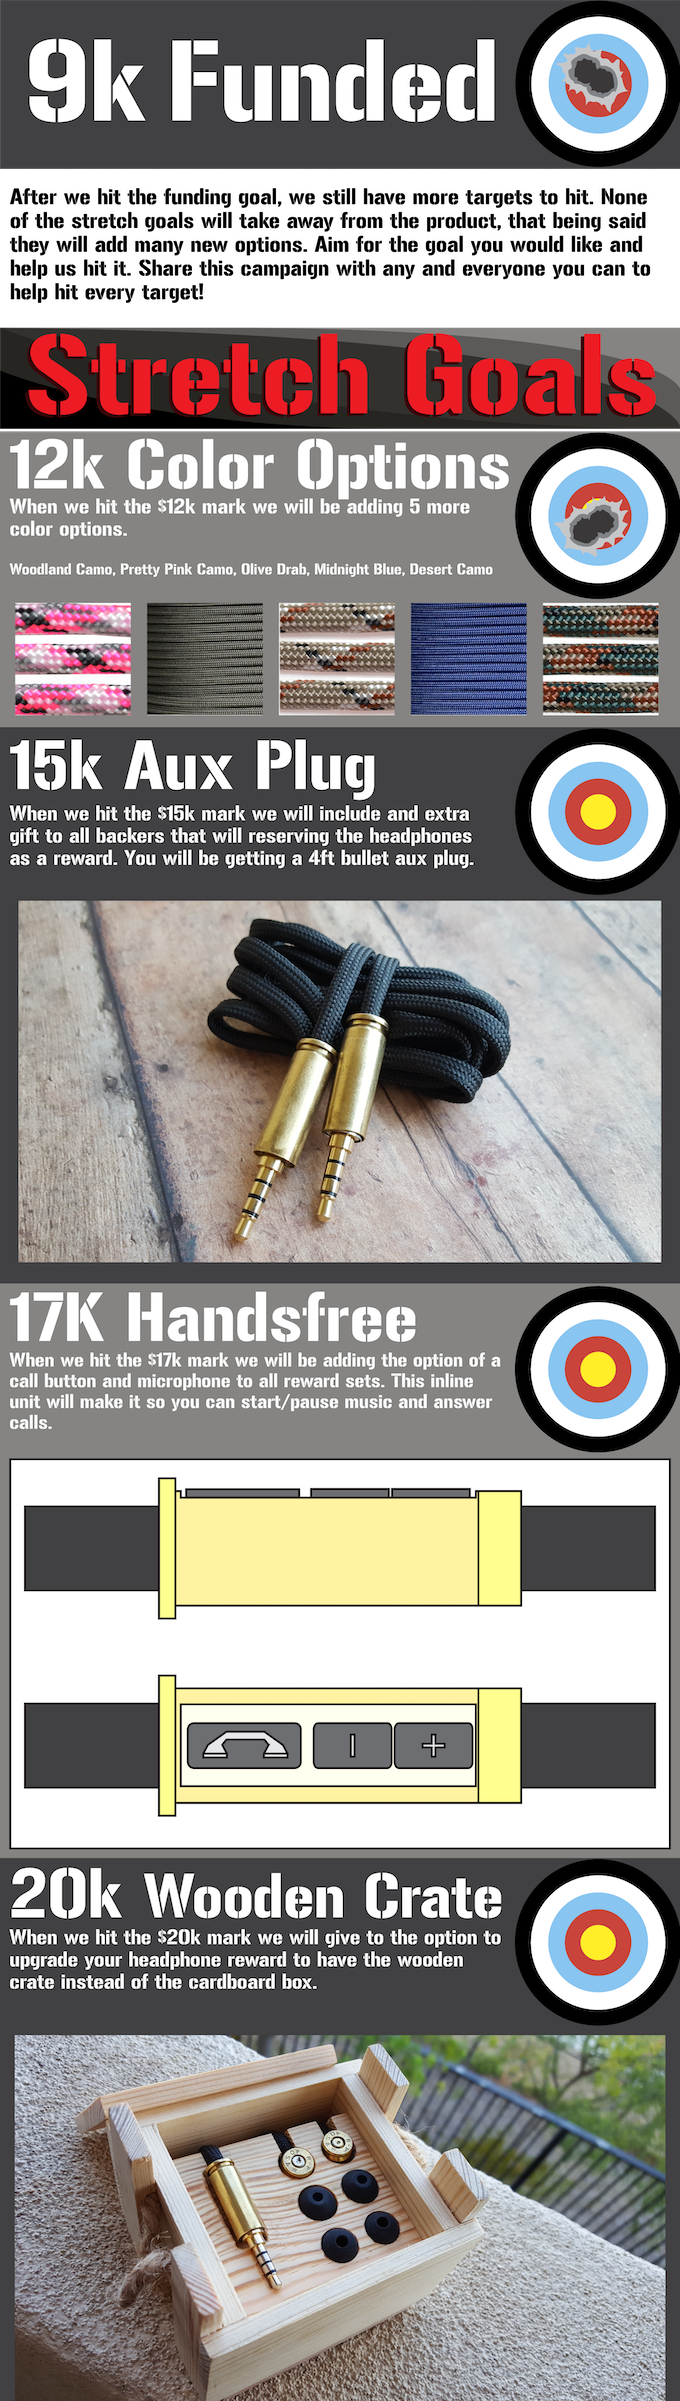 Double Tap Audio - Durable Handcrafted Bullet Headphones  by Randy